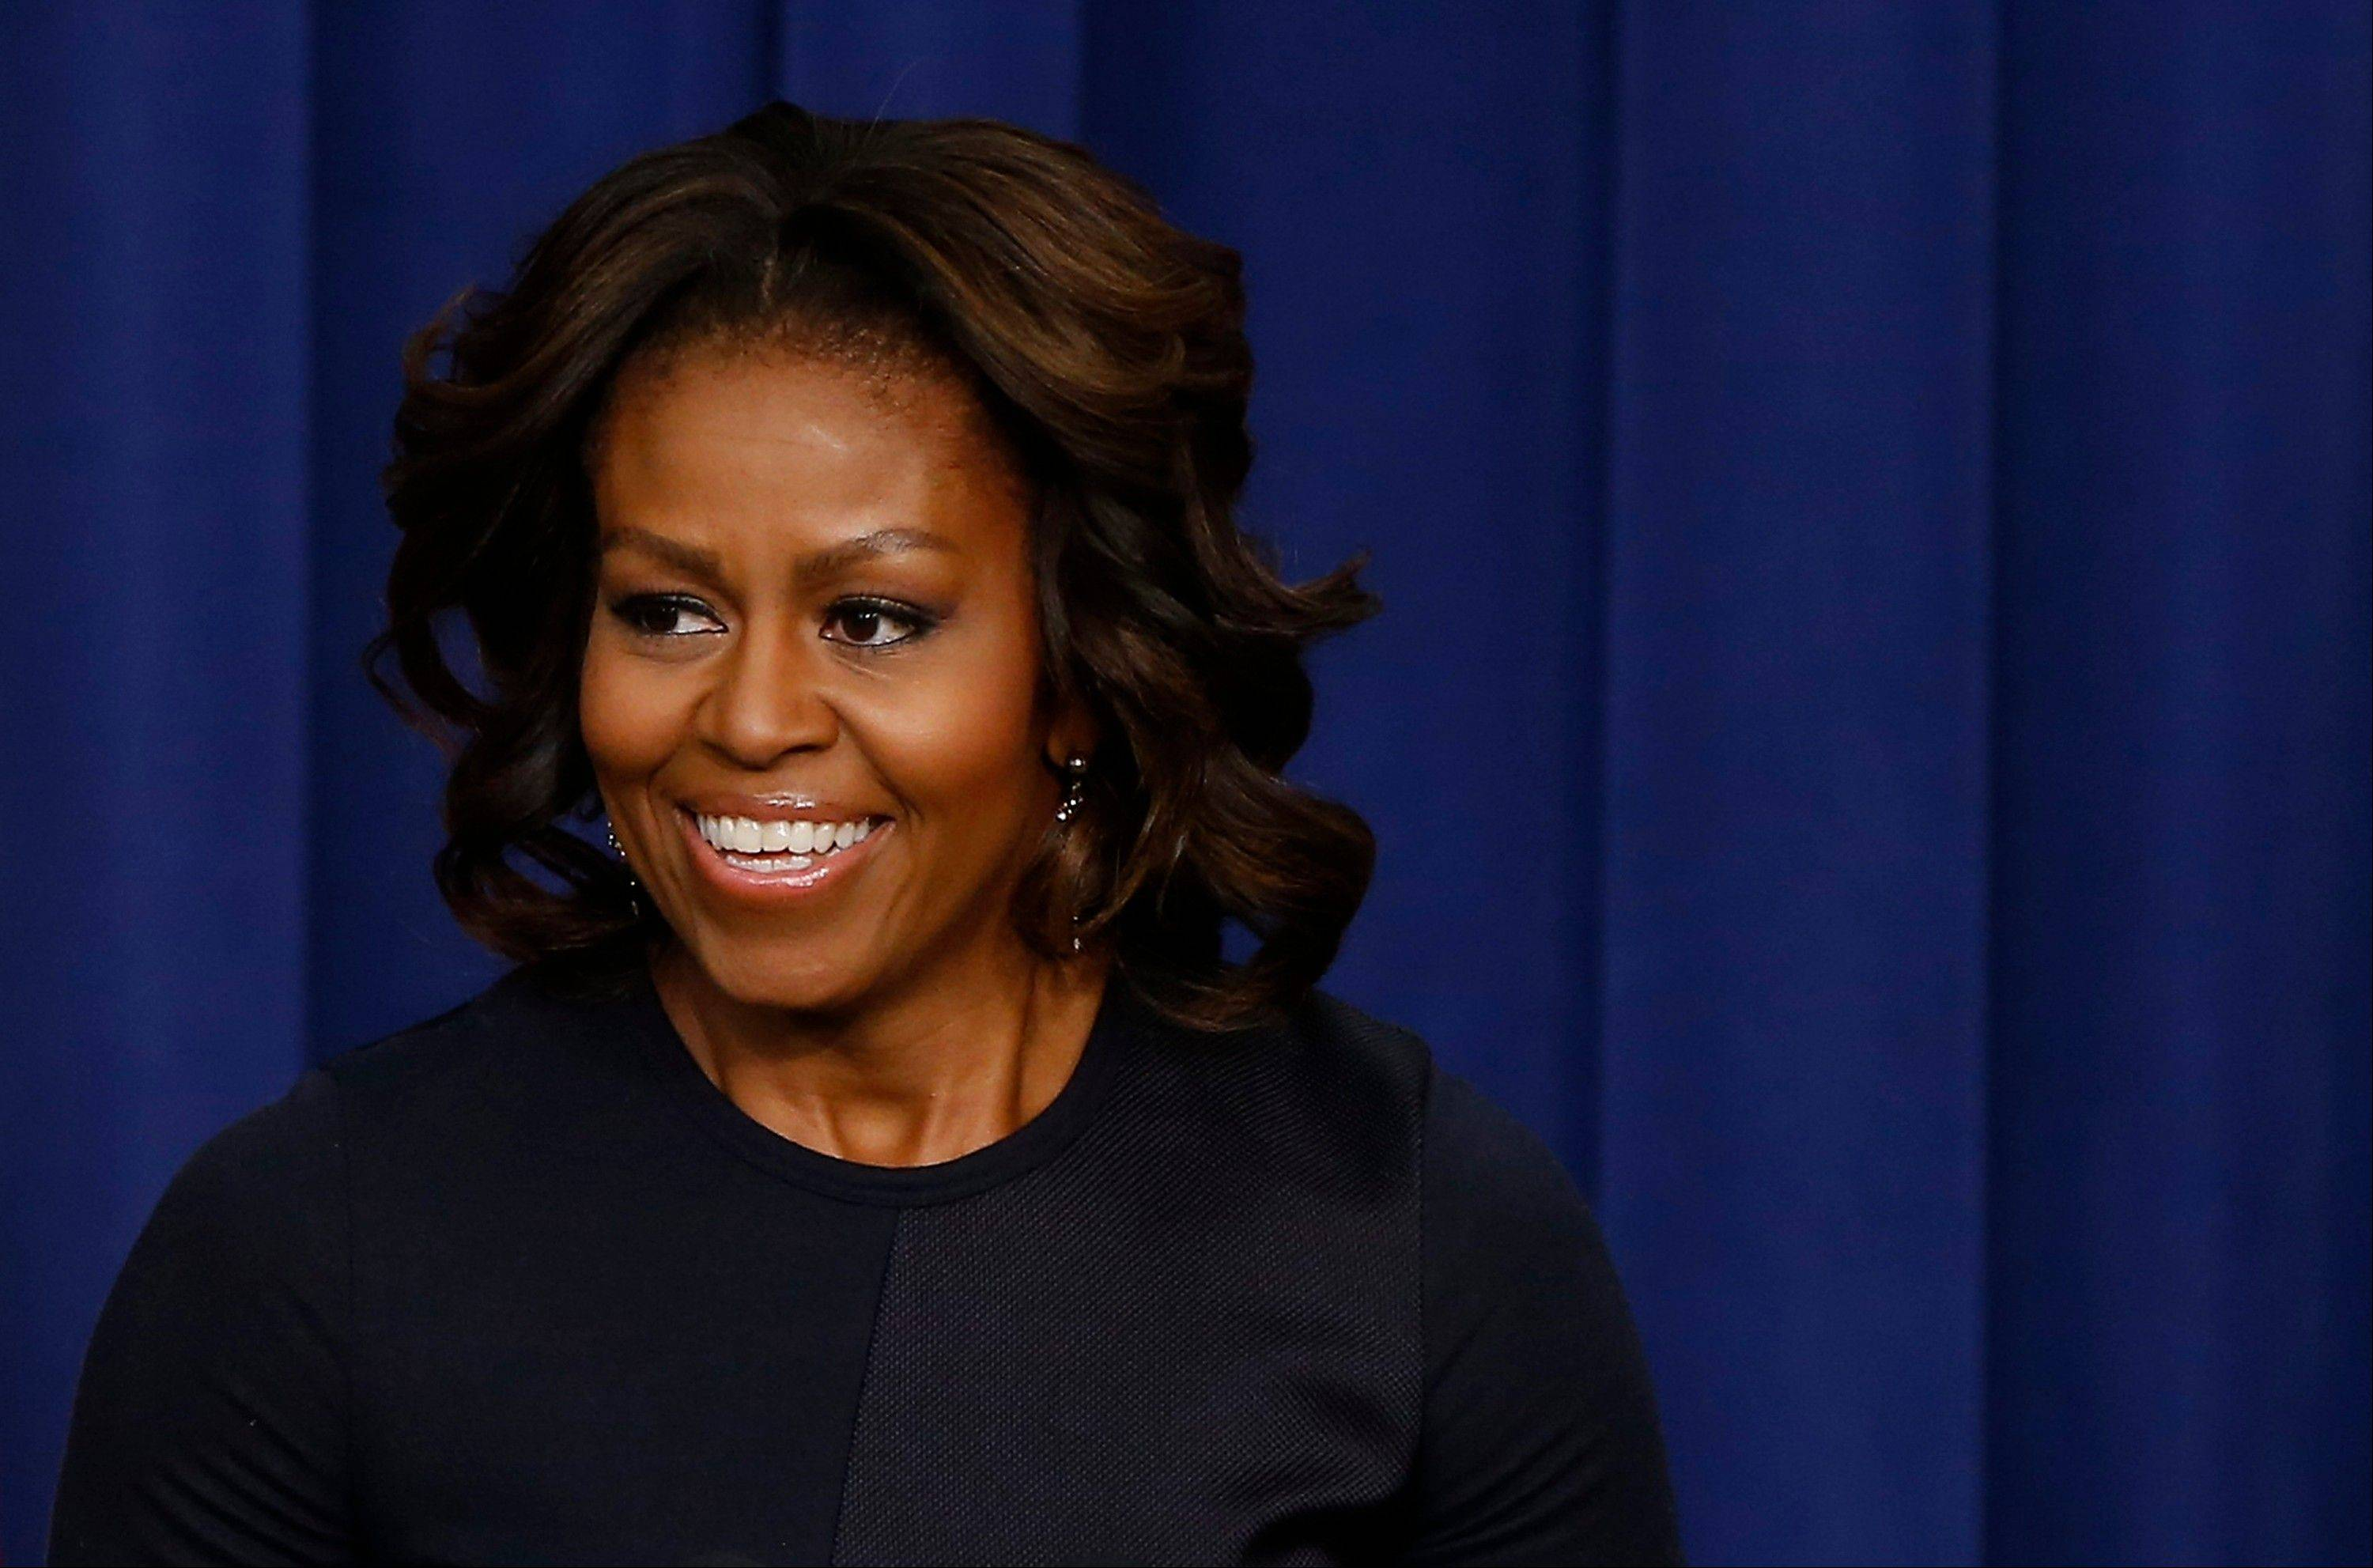 First lady is celebrating her 50th birthday Friday. The first lady was spending the day out of sight, with no scheduled public appearances after back-to-back events at the White House this week. A big birthday bash is on tap for Saturday night at the White House. President Barack Obama has been involved in planning it.